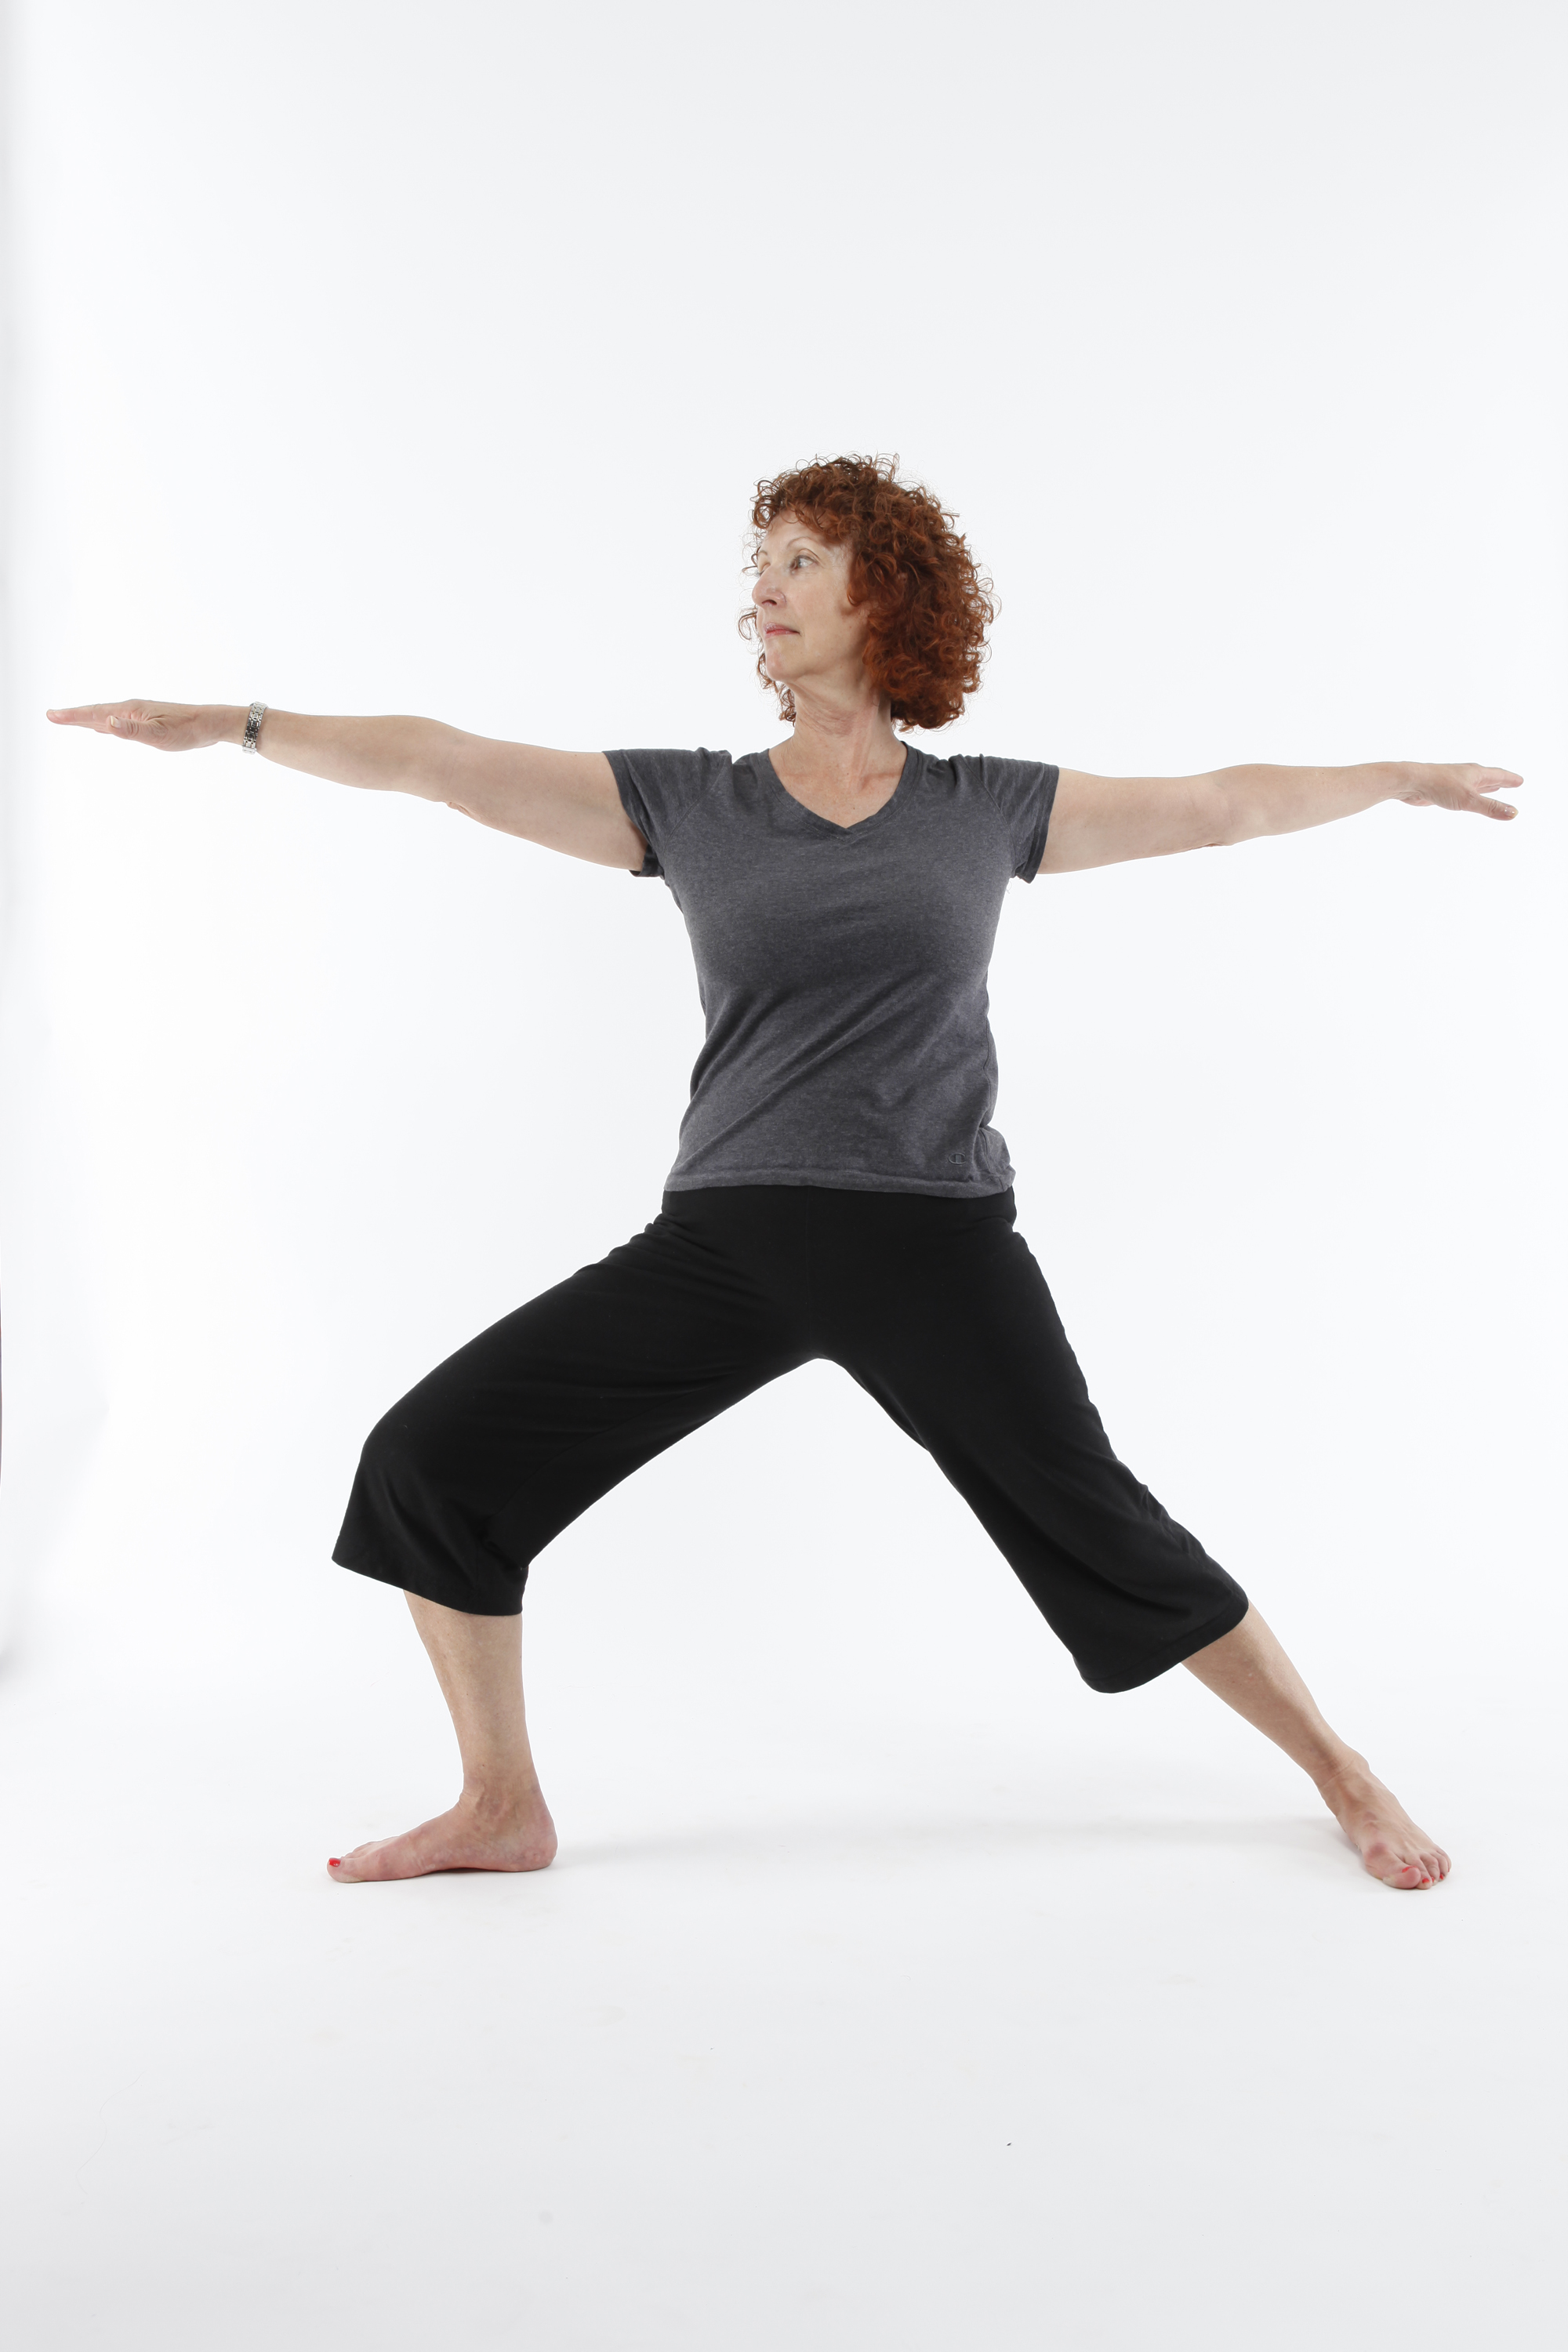 #17: Do Yoga @ The Rec – THE OTHER BUCKET  Warrior 2 Pose